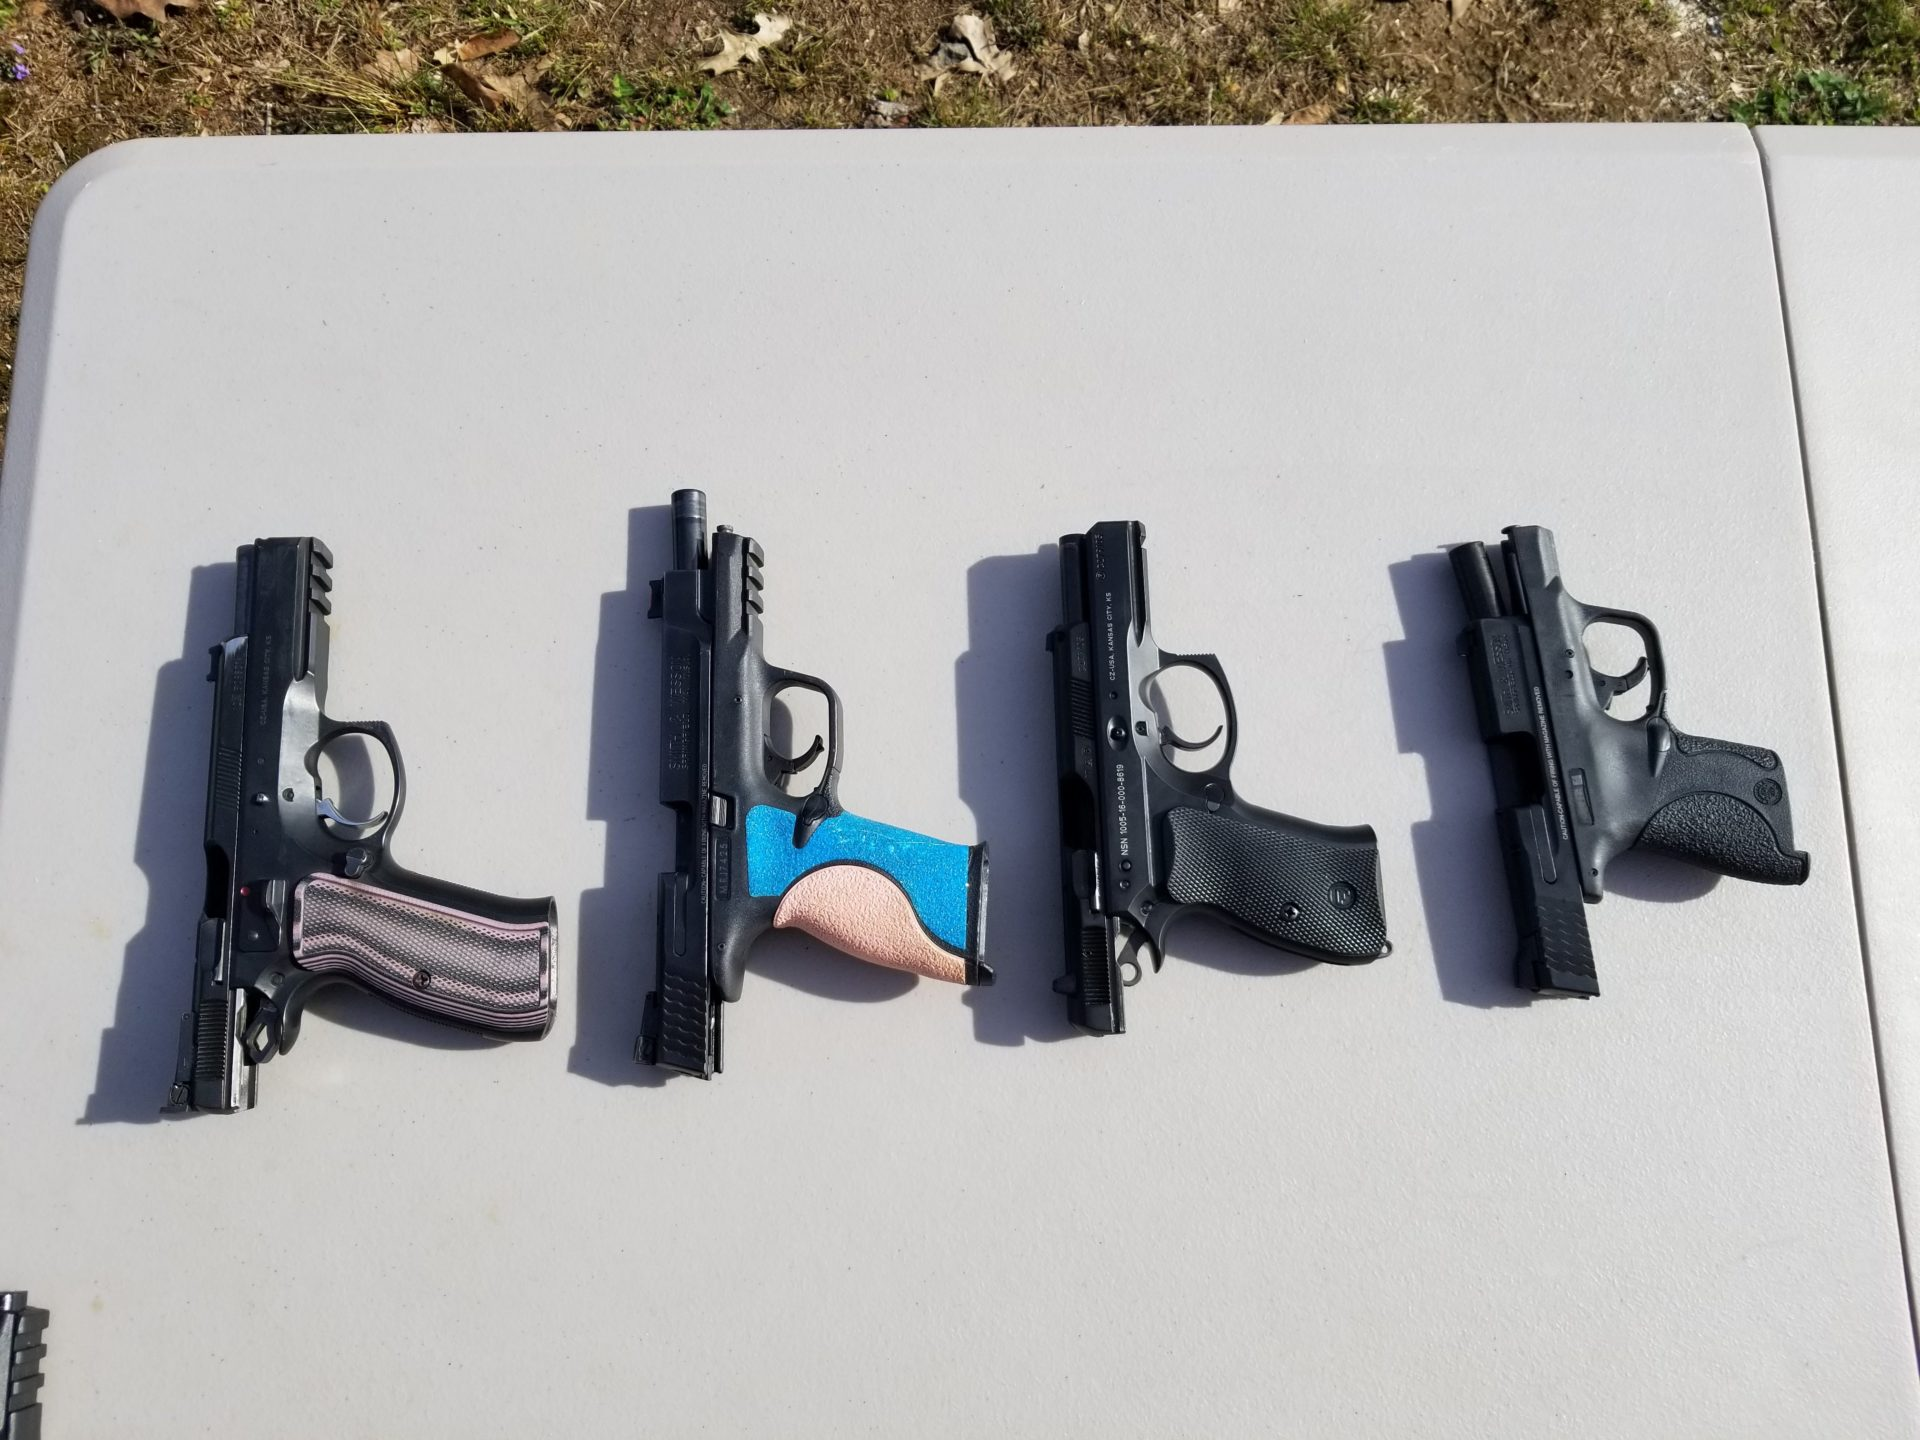 four different guns on a table